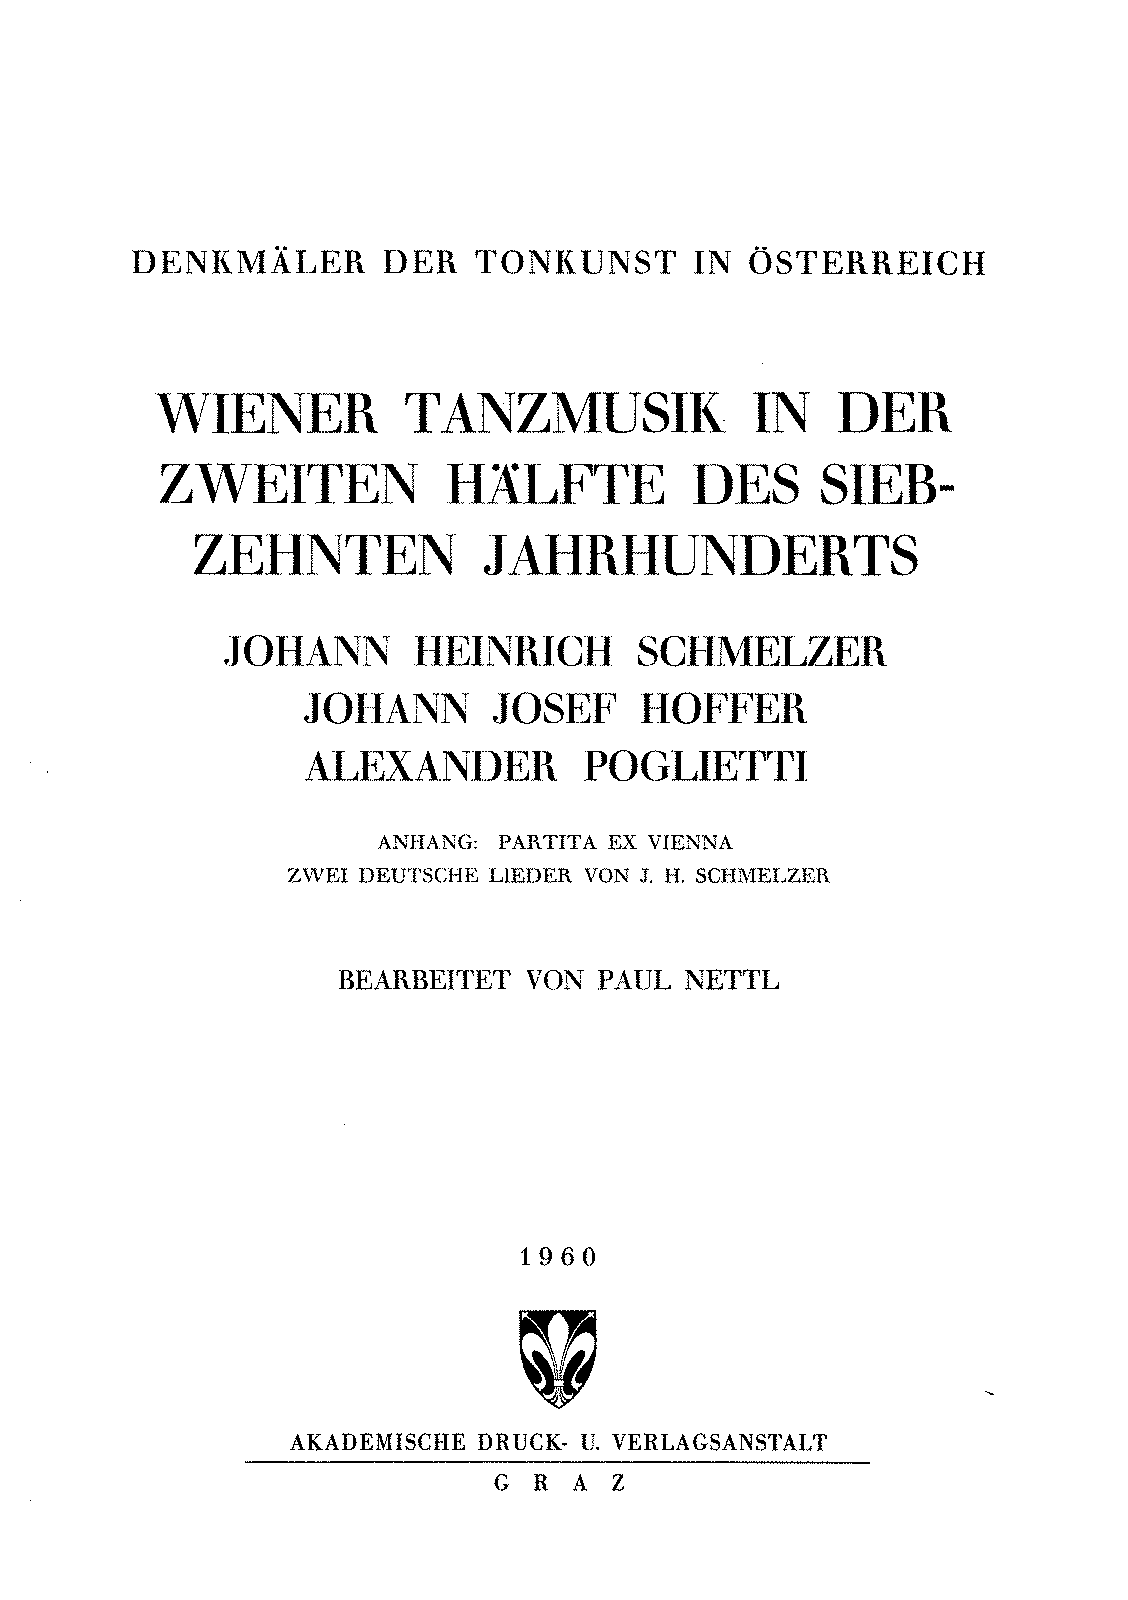 PMLP131092-Schmelzer, Johann Heinrich and others - Viennese Dance Music in the second half of 17th Century (DTO 56).pdf